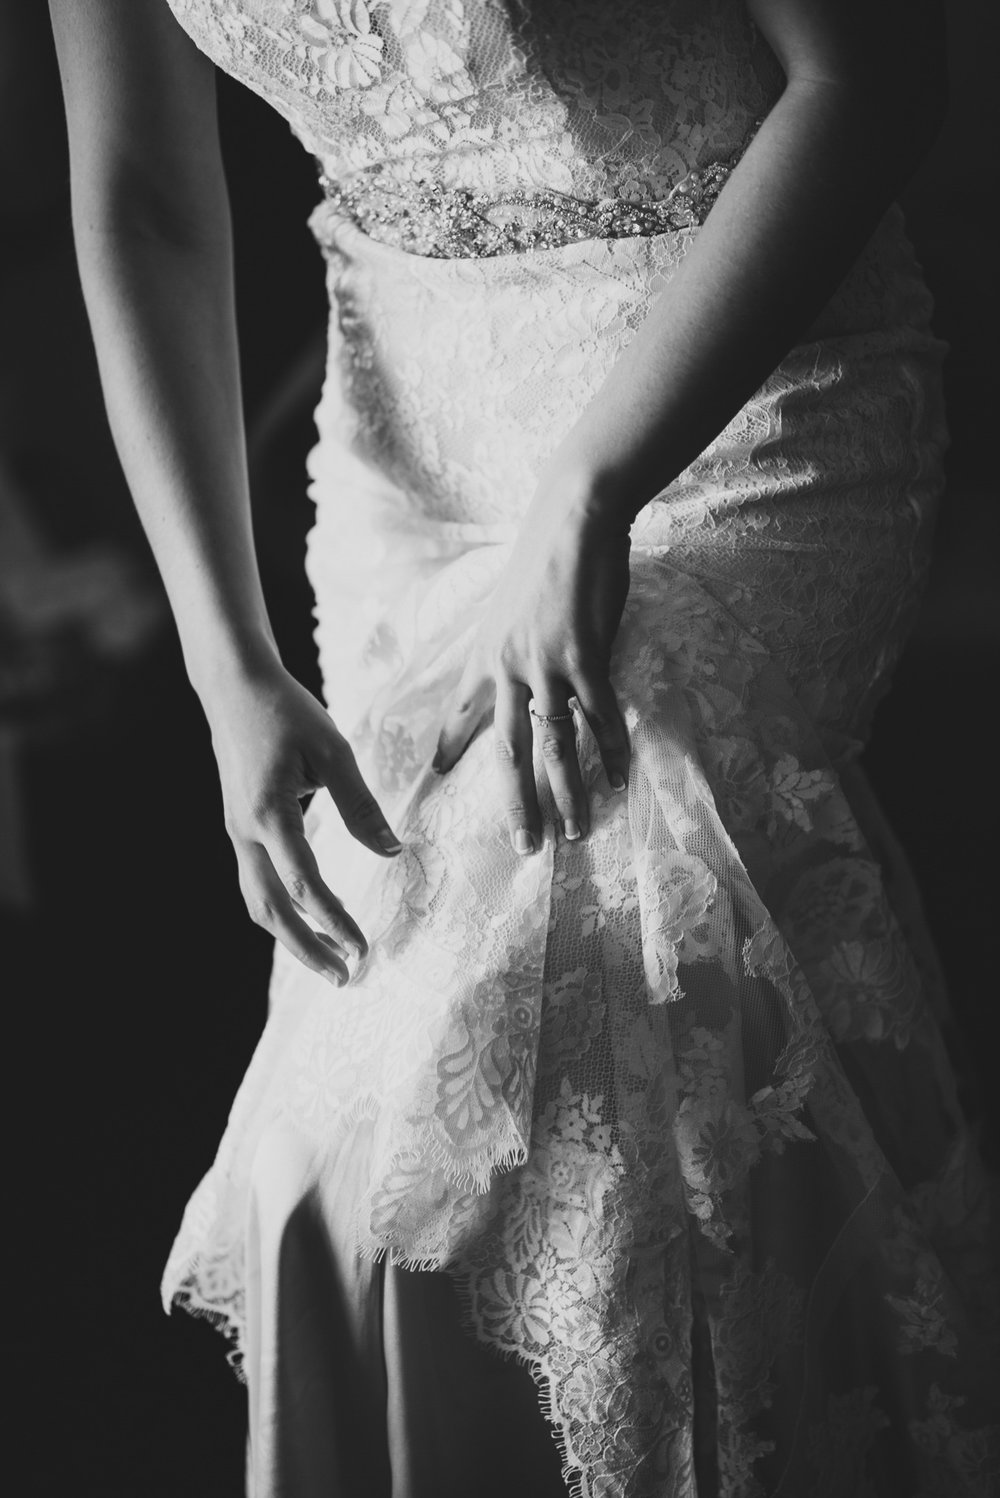 24elopement-photographer-colorado-026snow_mountain_ranch_wedding_colorado_wedding_photographer_kara&jason_0148_vintage_black_and_white_film.jpg